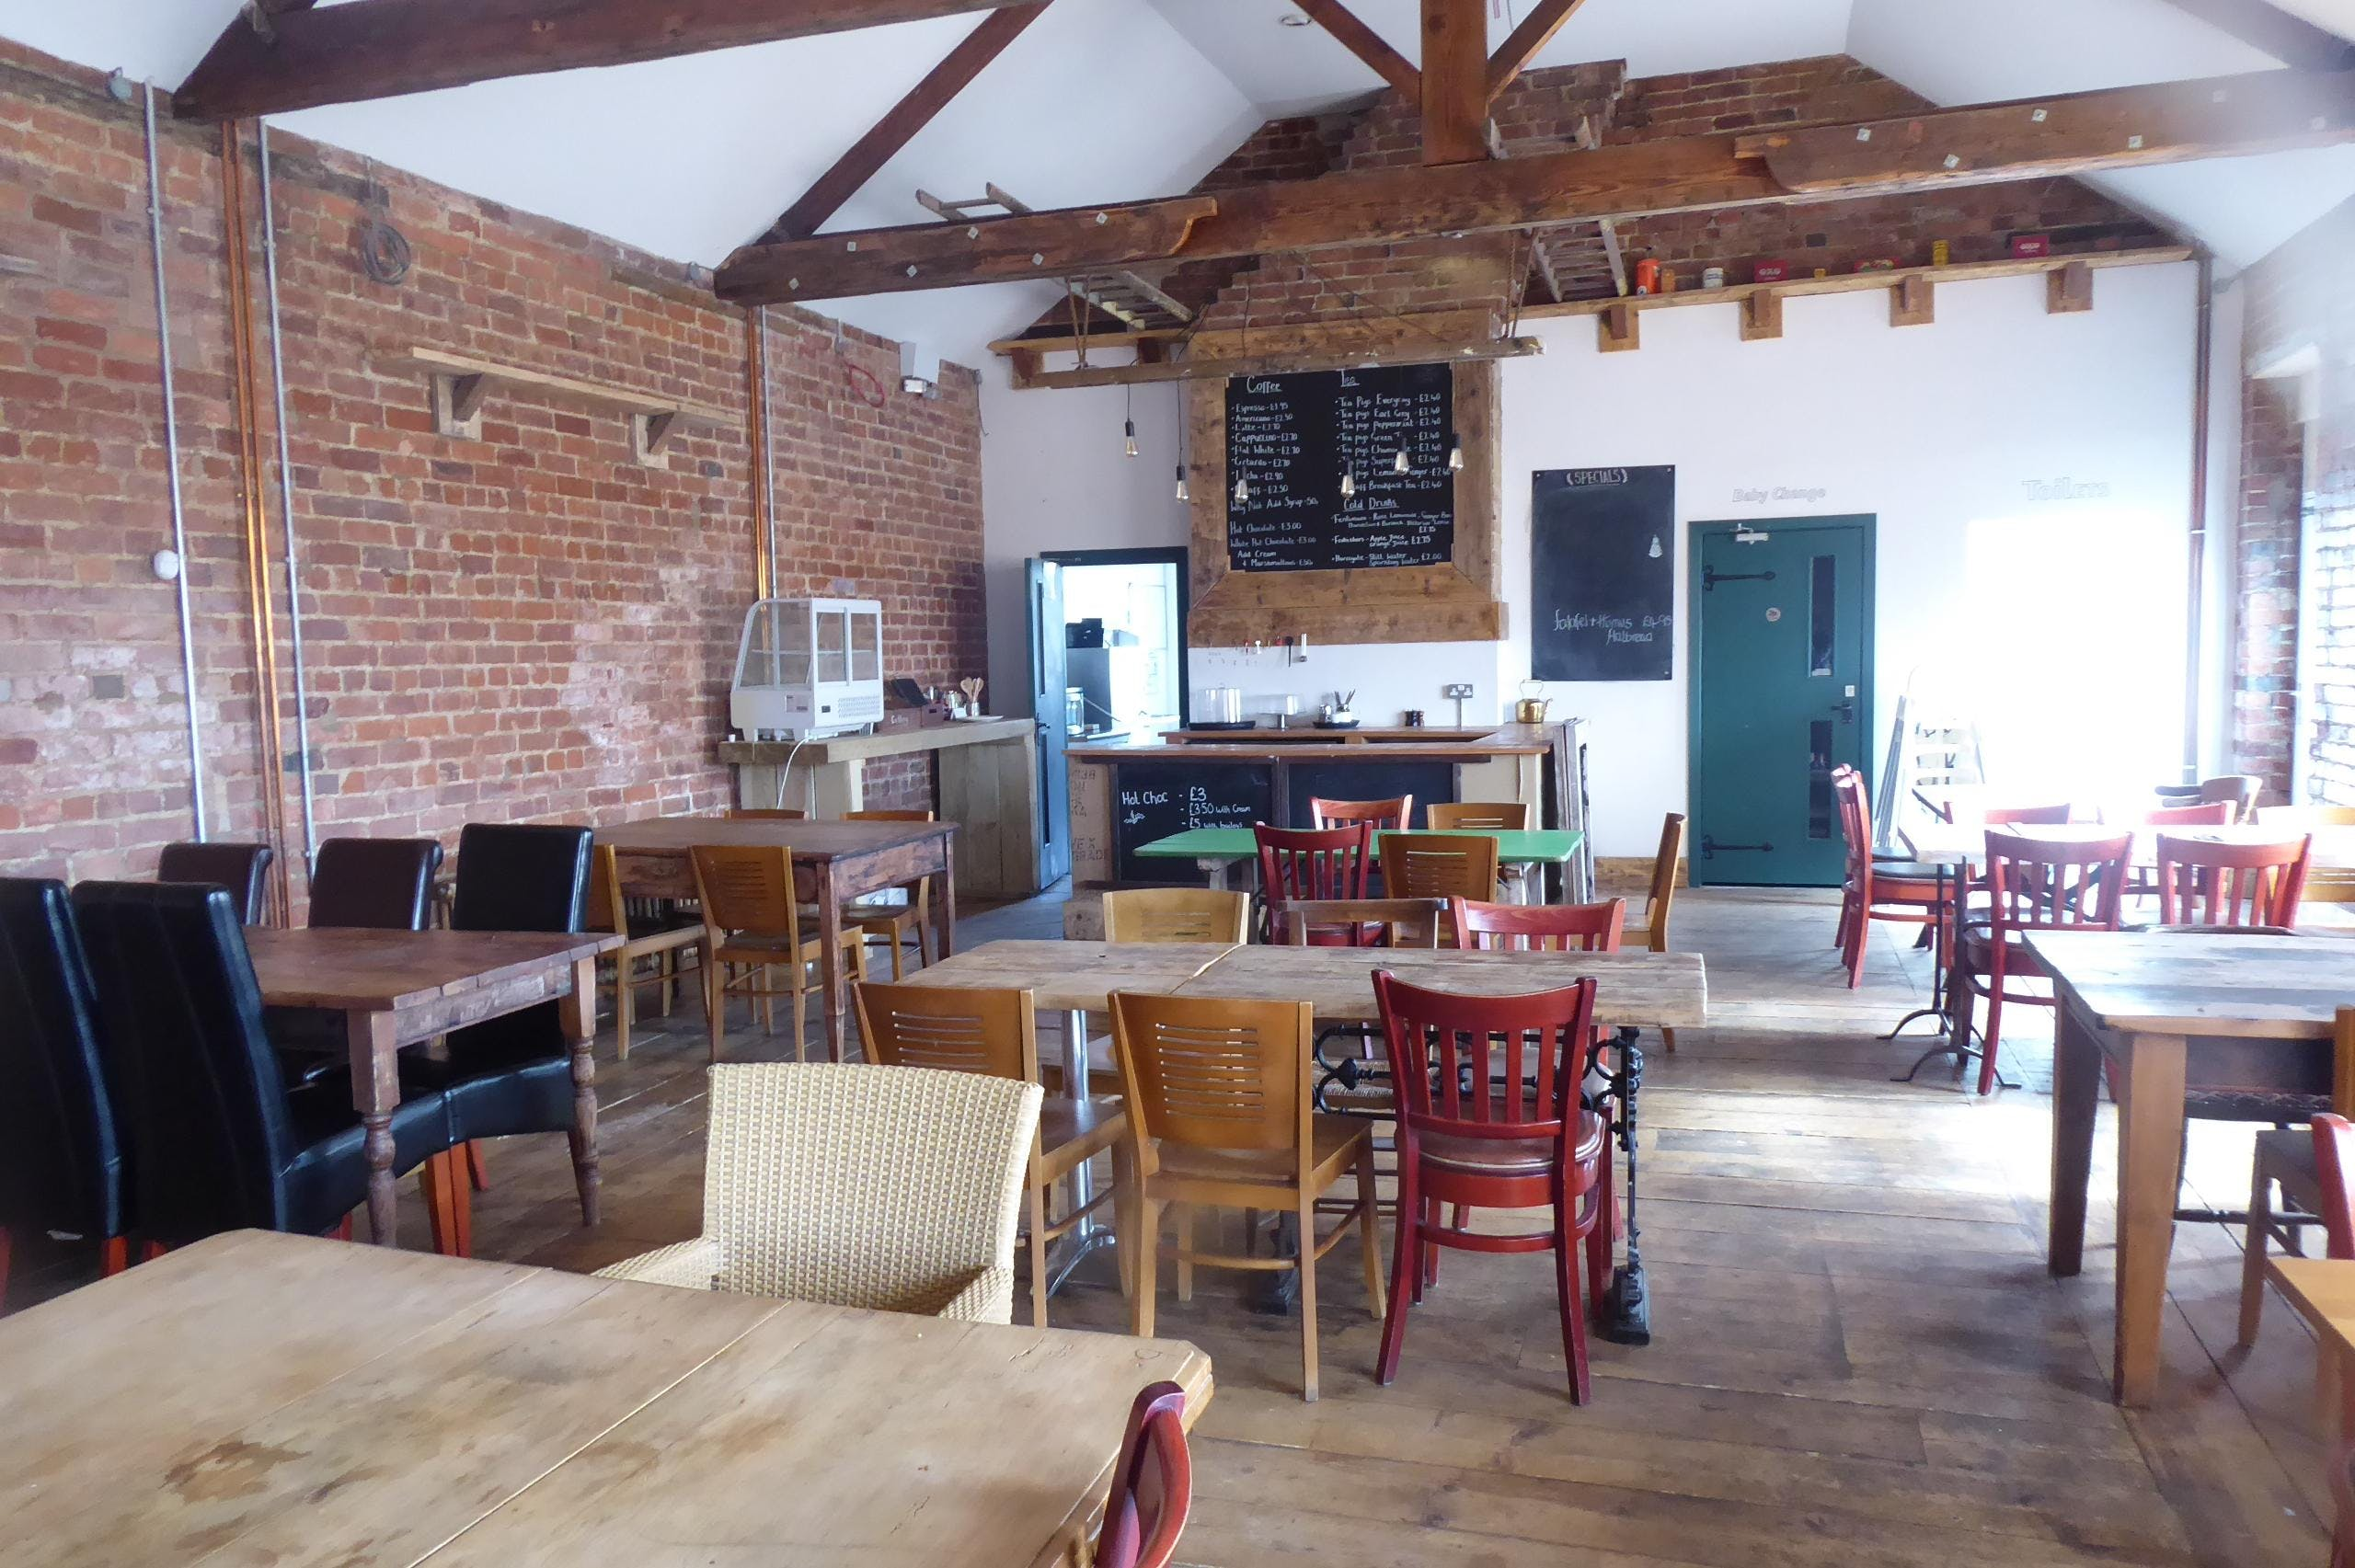 Salvaged Kitchen & Bar/former Crown Inn, Clowne, Restaurant / Development (Land & Buildings) For Sale - P1050049.JPG